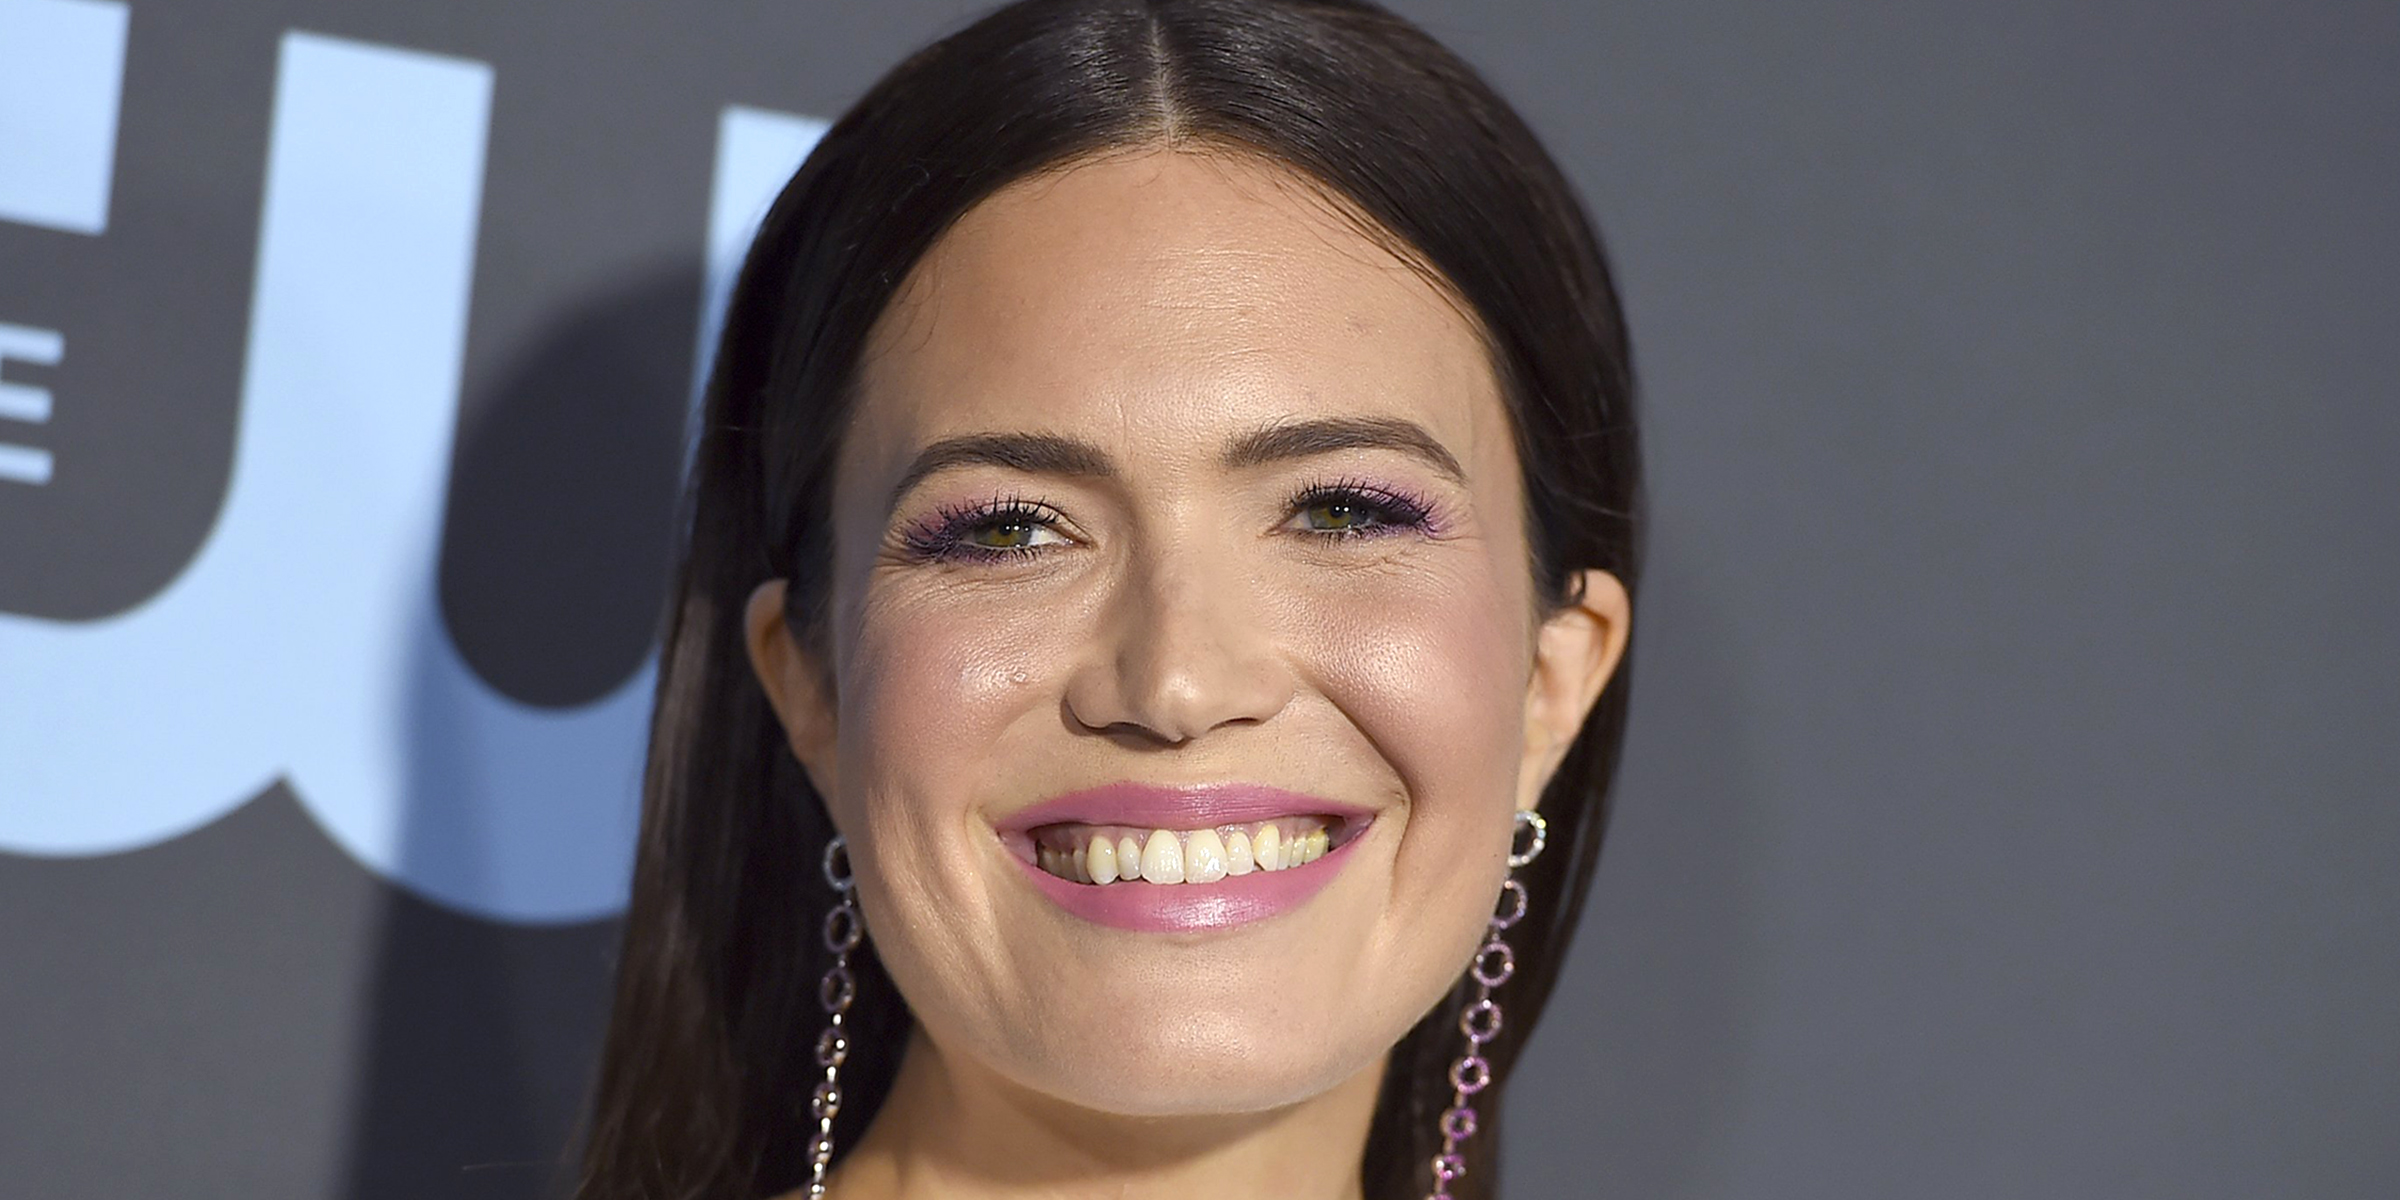 Mandy Moore Mandy Moore new pictures